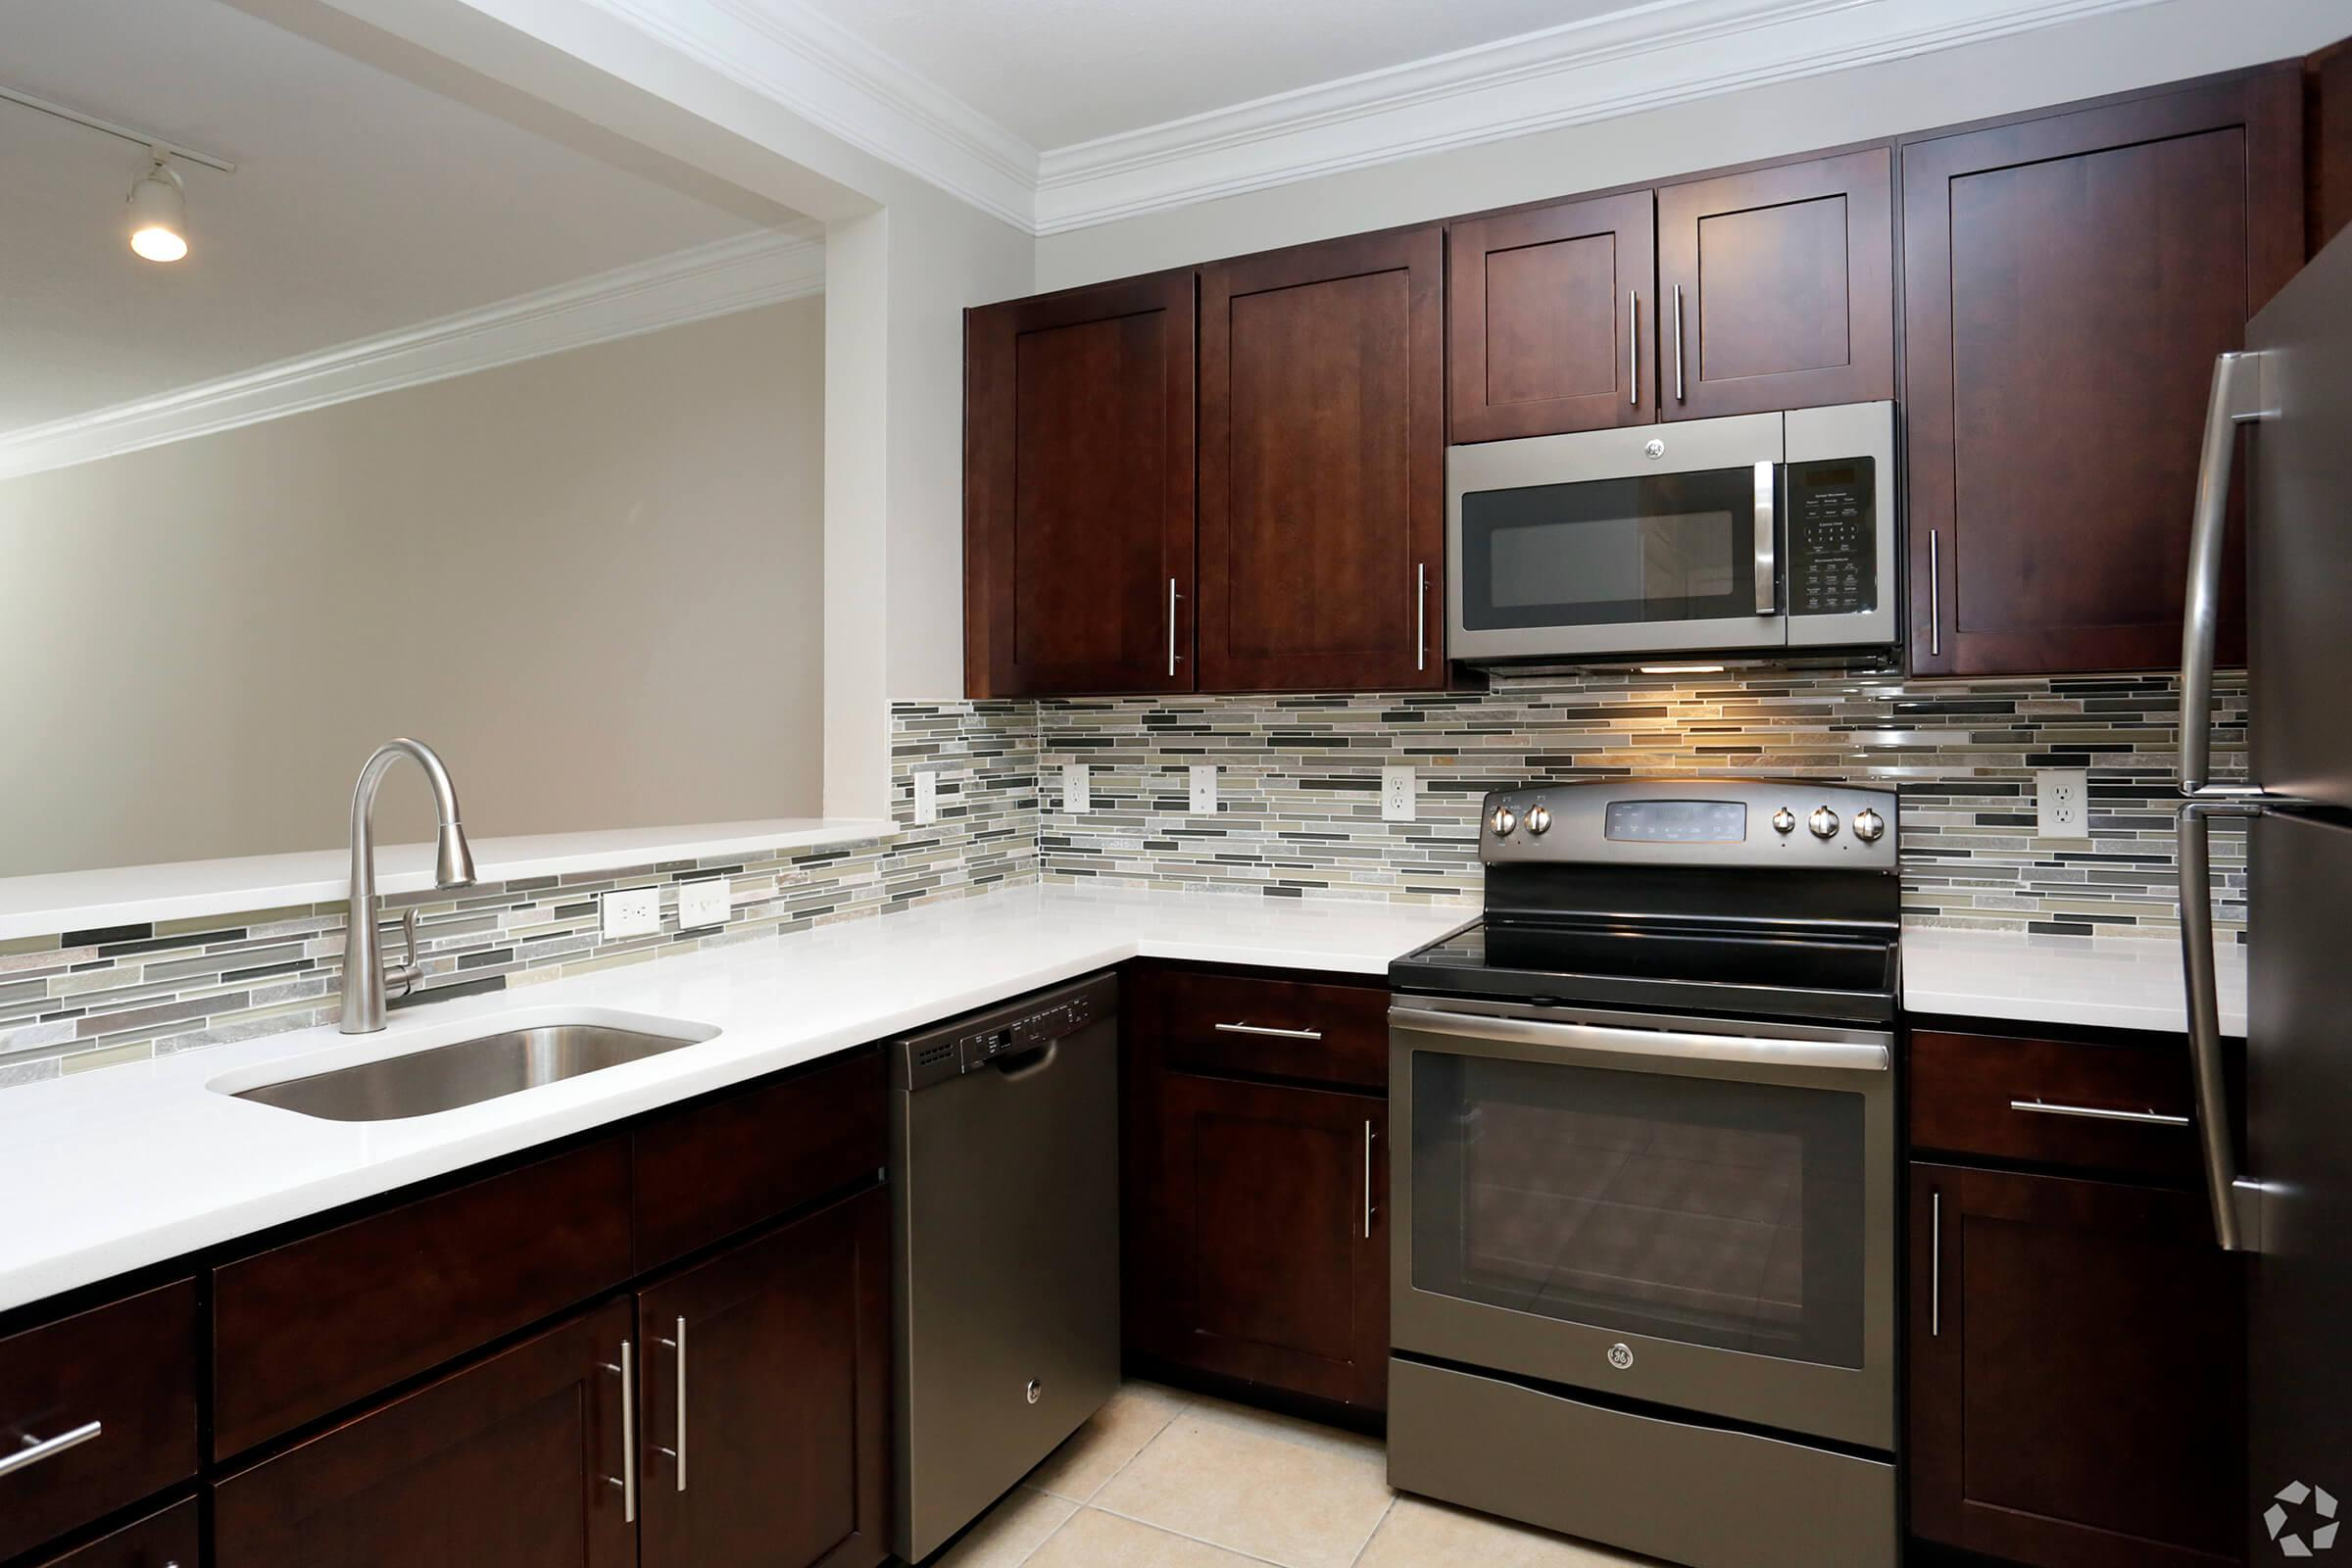 Kitchen at Emerson at Cherry Lane Apartments in Laurel, MD